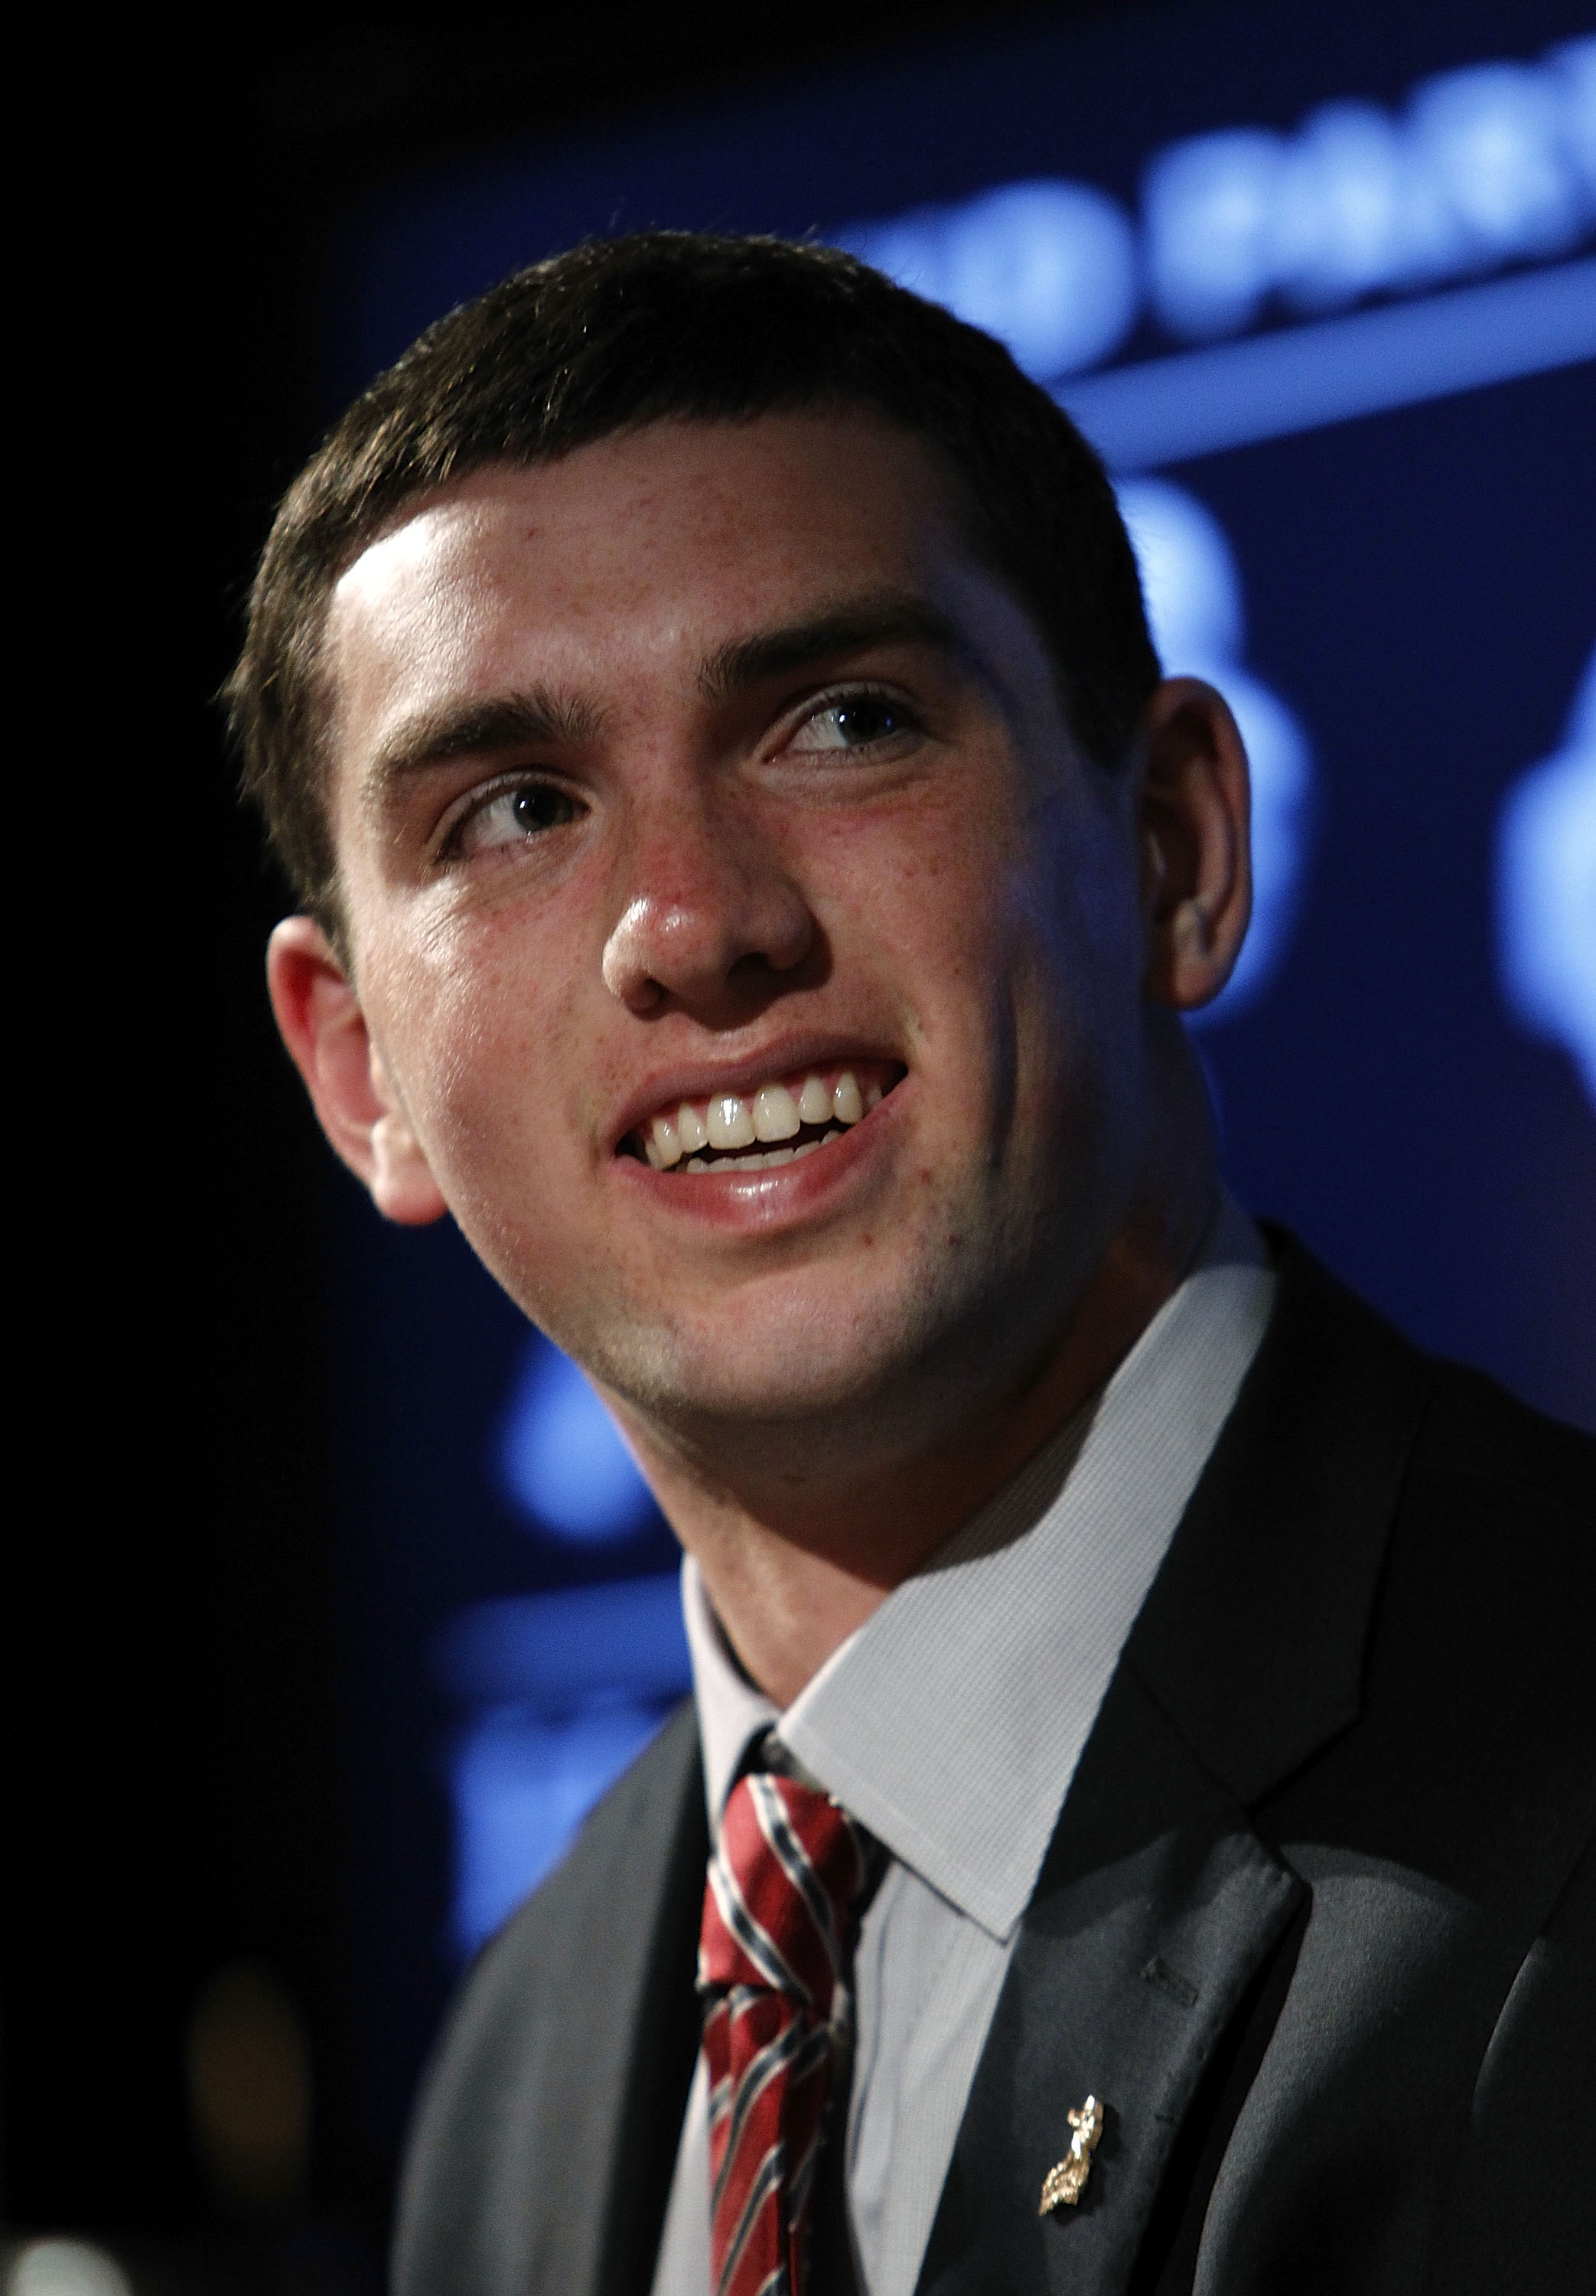 NEW YORK - DECEMBER 11:  2010 Heisman Trophy candidate Andrew Luck of the Stanford University Cardinals listens to a question at a press conference at The New York Marriott Marquis on December 11, 2010 in New York City.  (Photo by Jeff Zelevansky/Getty Im